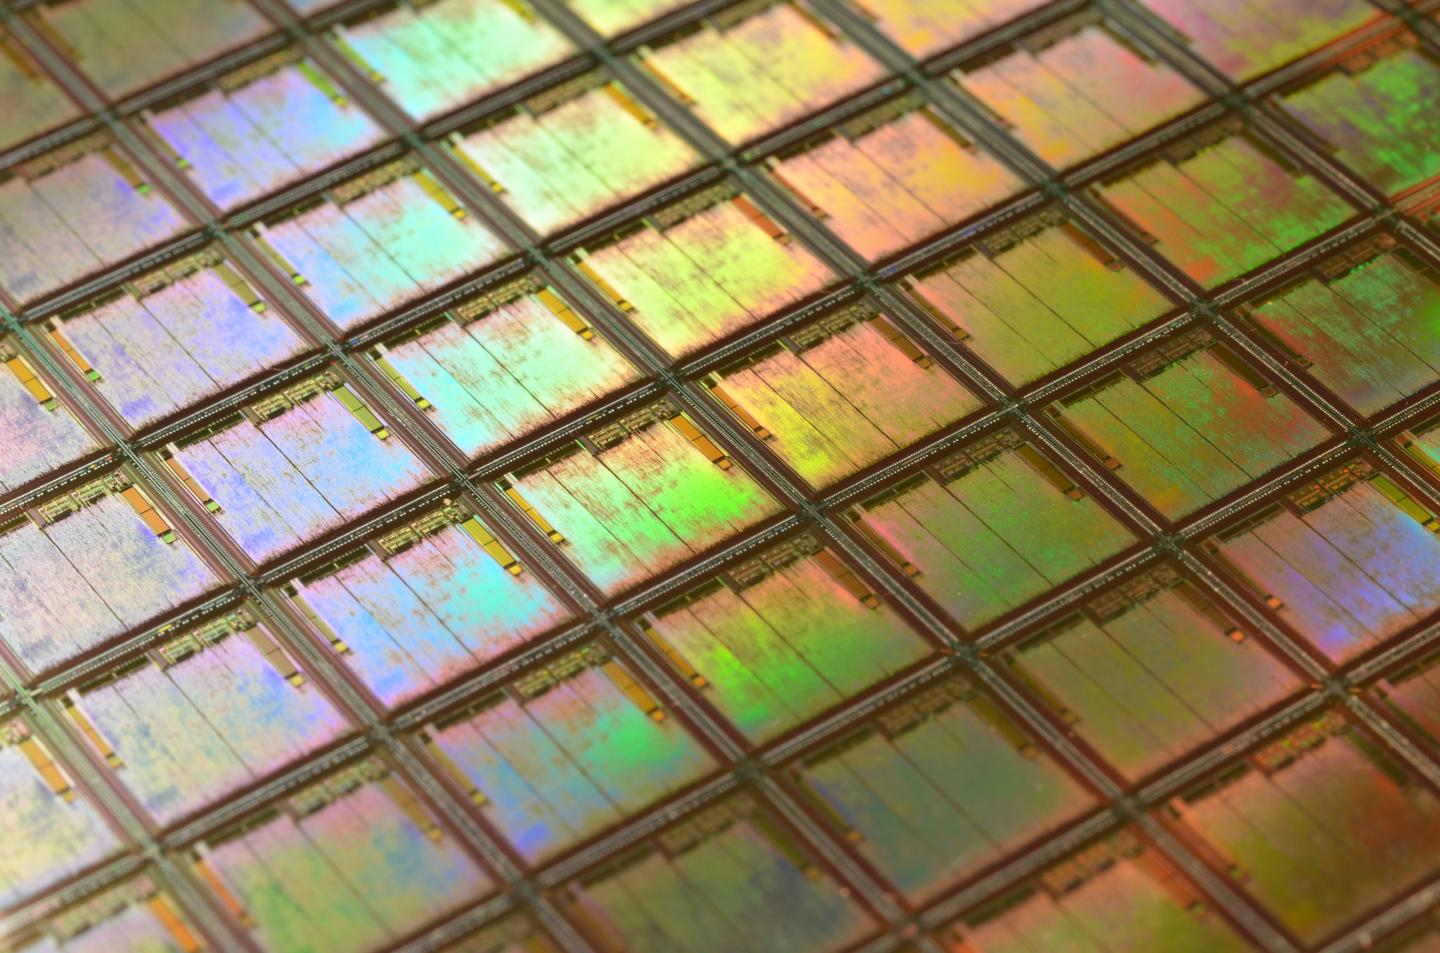 Wafer-scale production of graphene-based photonic devices